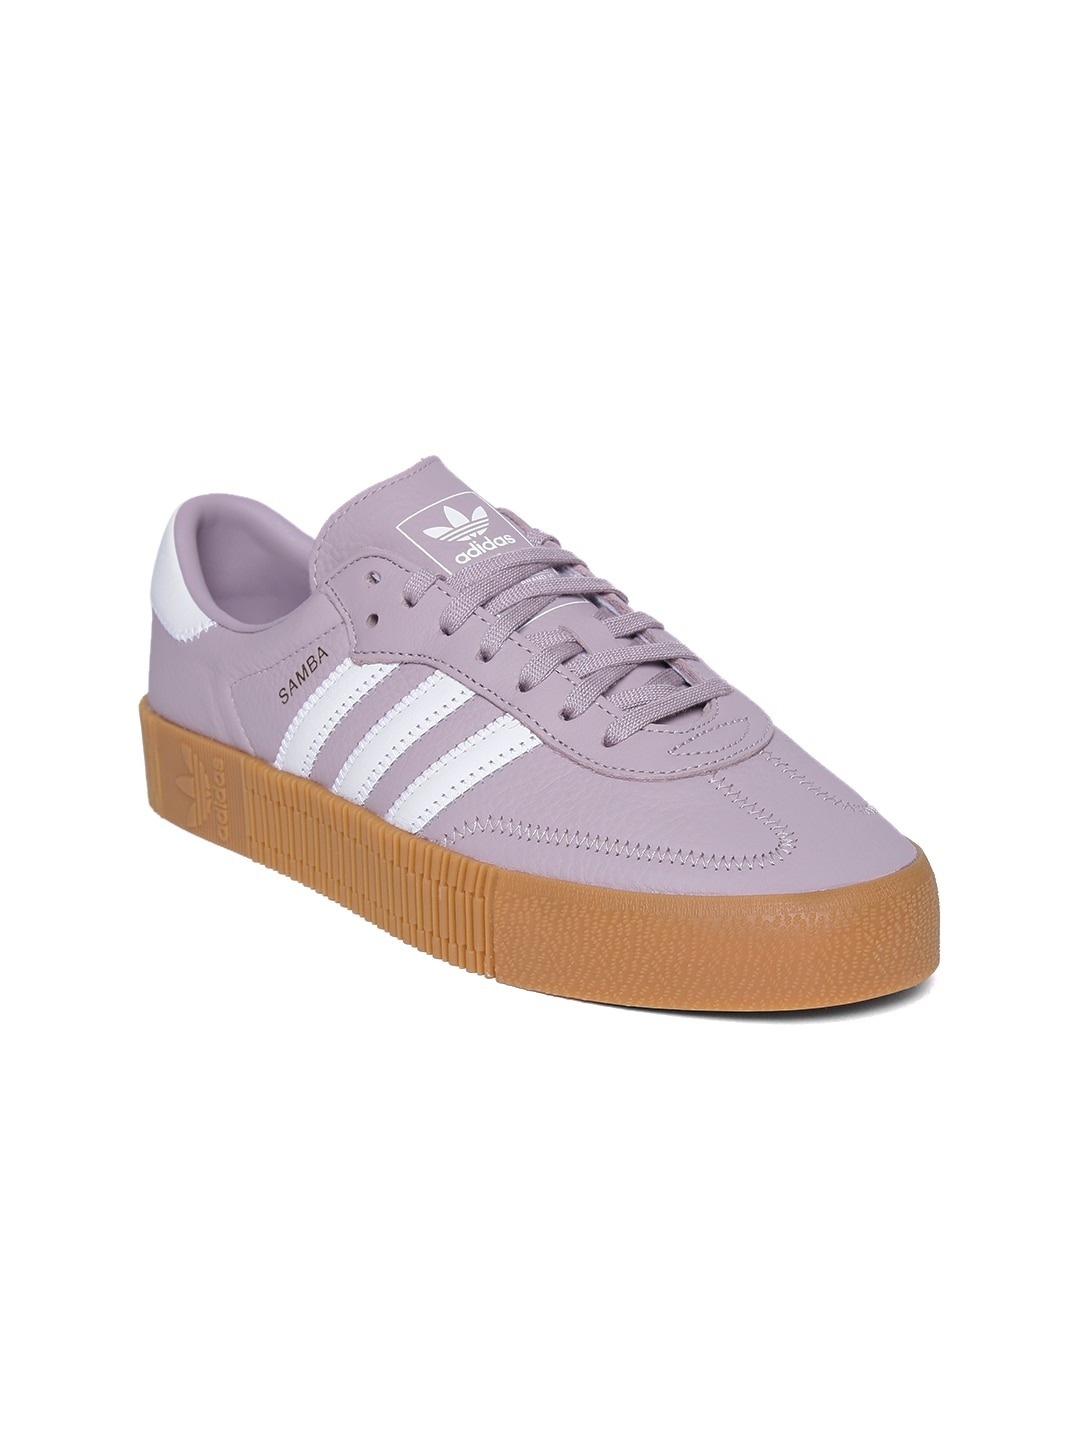 c16ec2a3085a Women s Adidas Shoes - Buy Adidas Shoes for Women Online in India